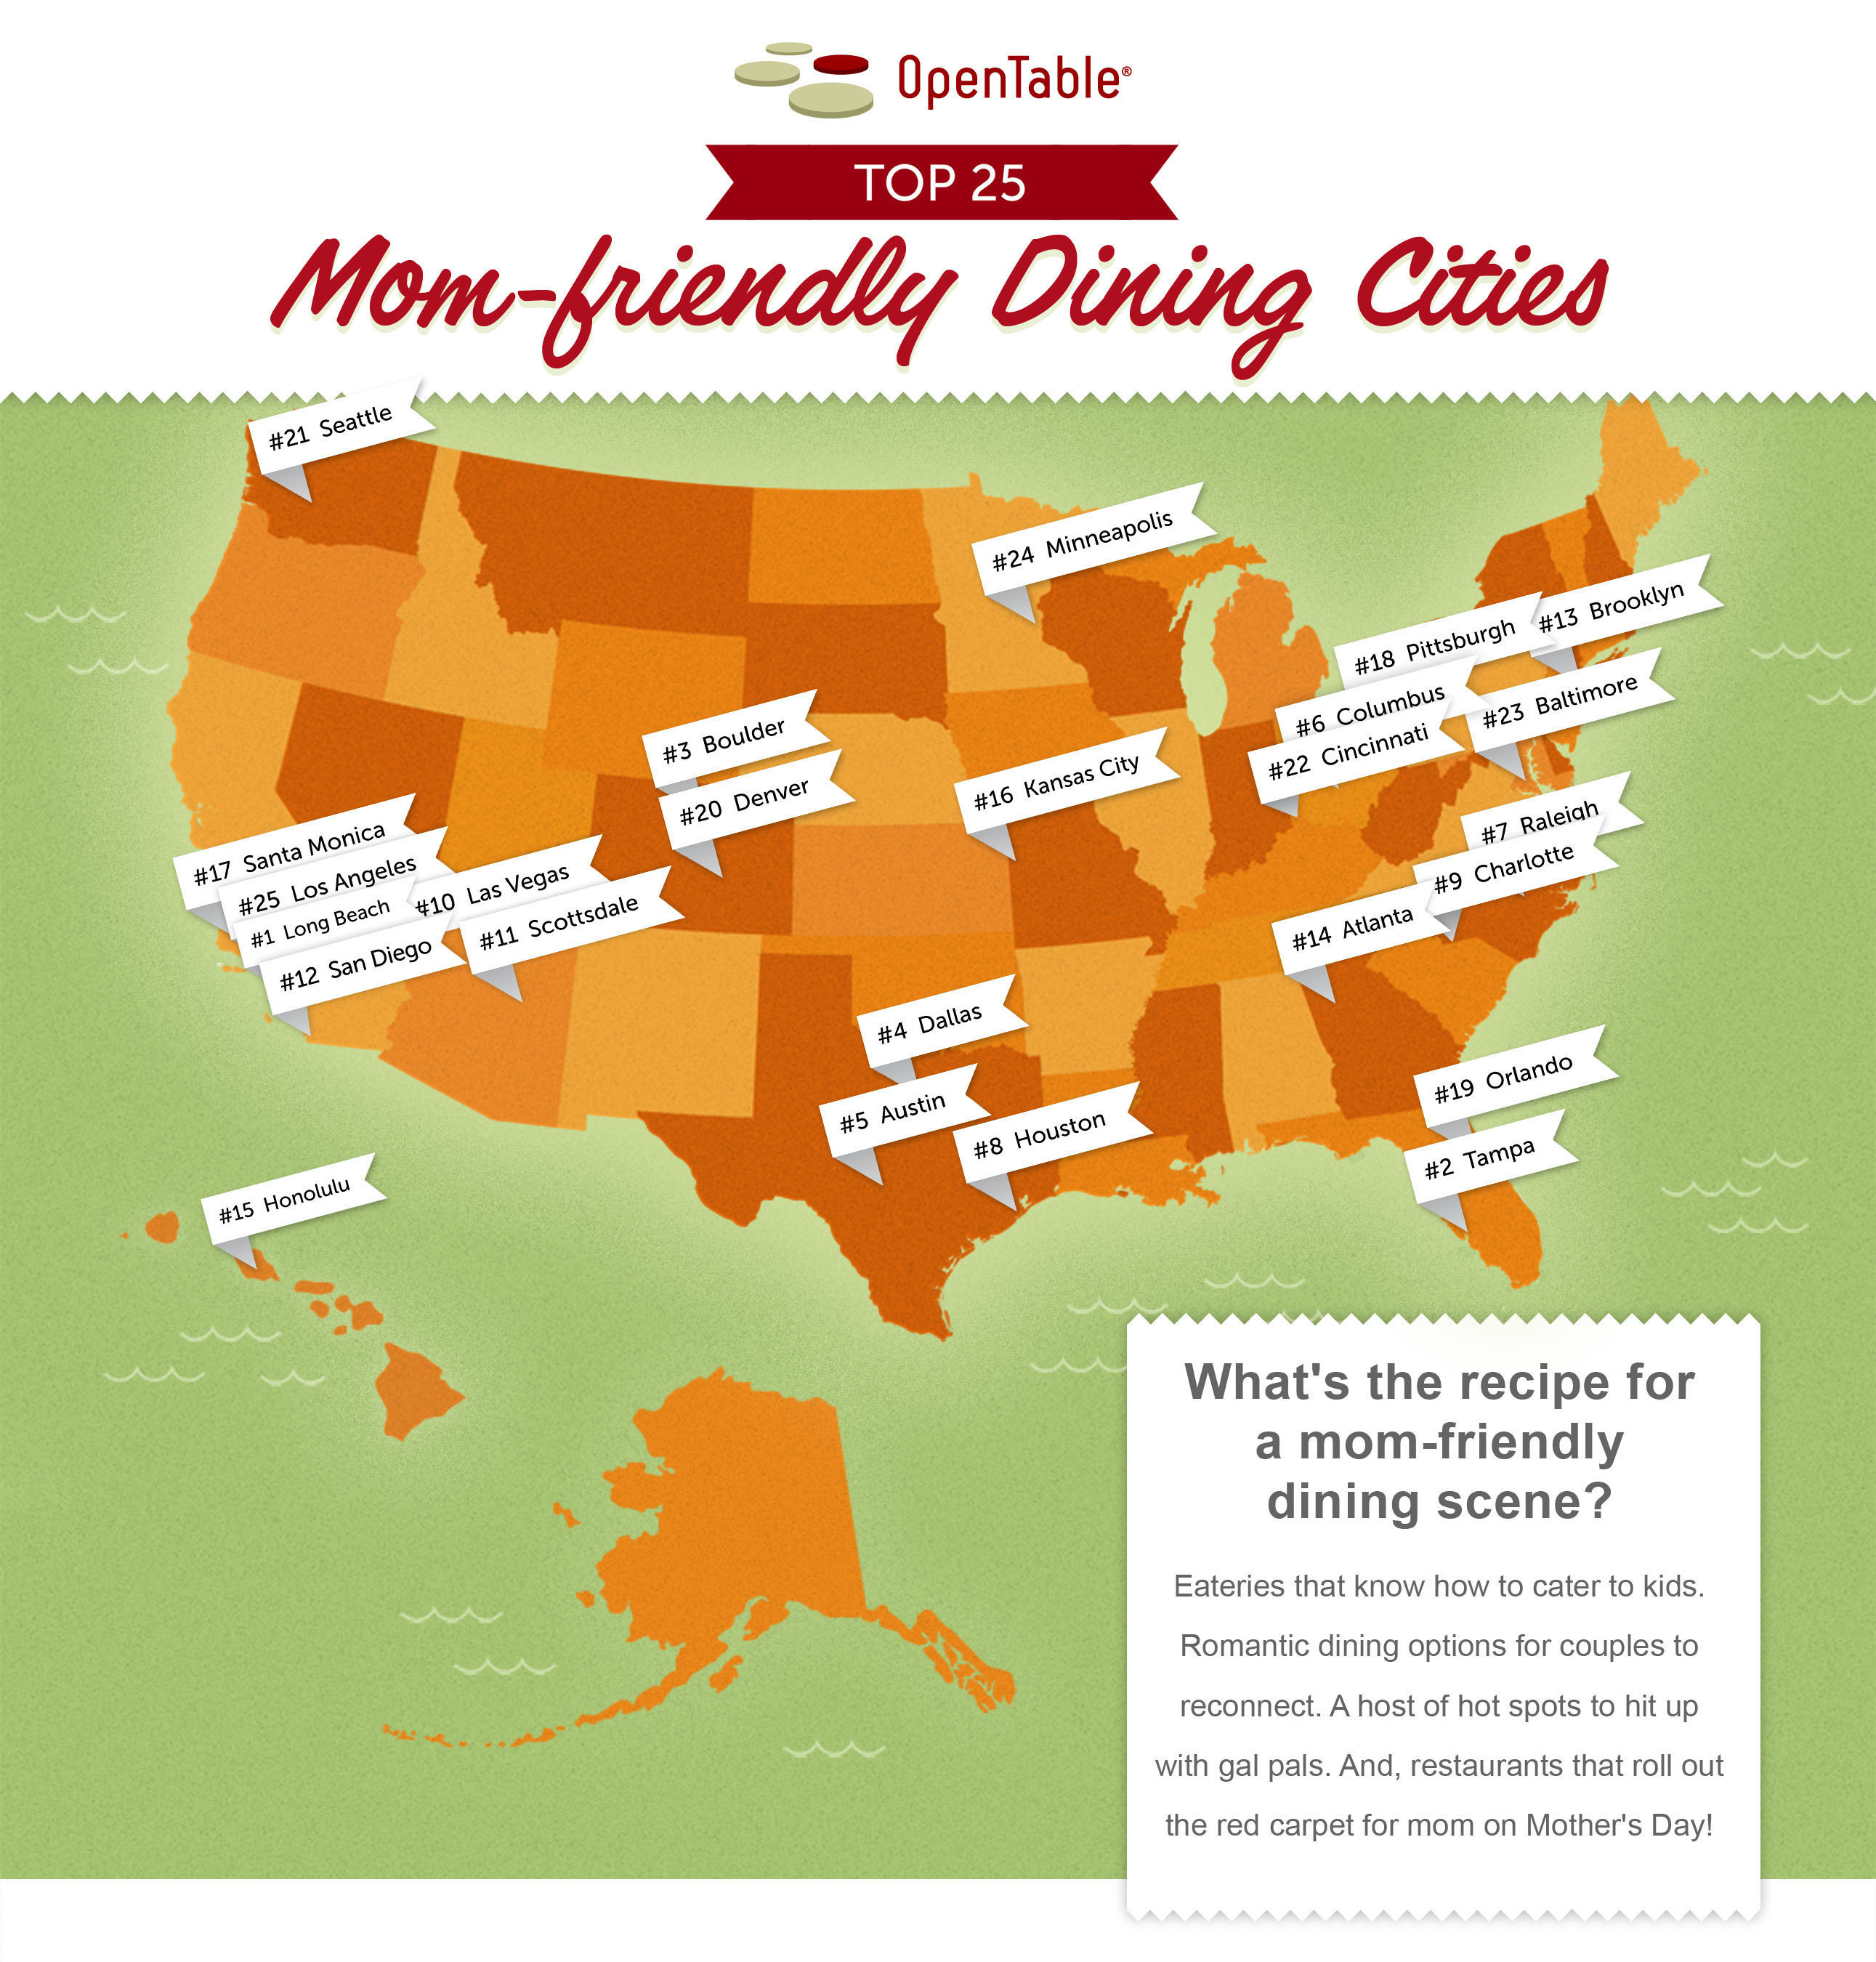 In celebration of Mother's Day, OpenTable Reveals Top 25 Mom-friendly Dining Cities in the U.S.  ...